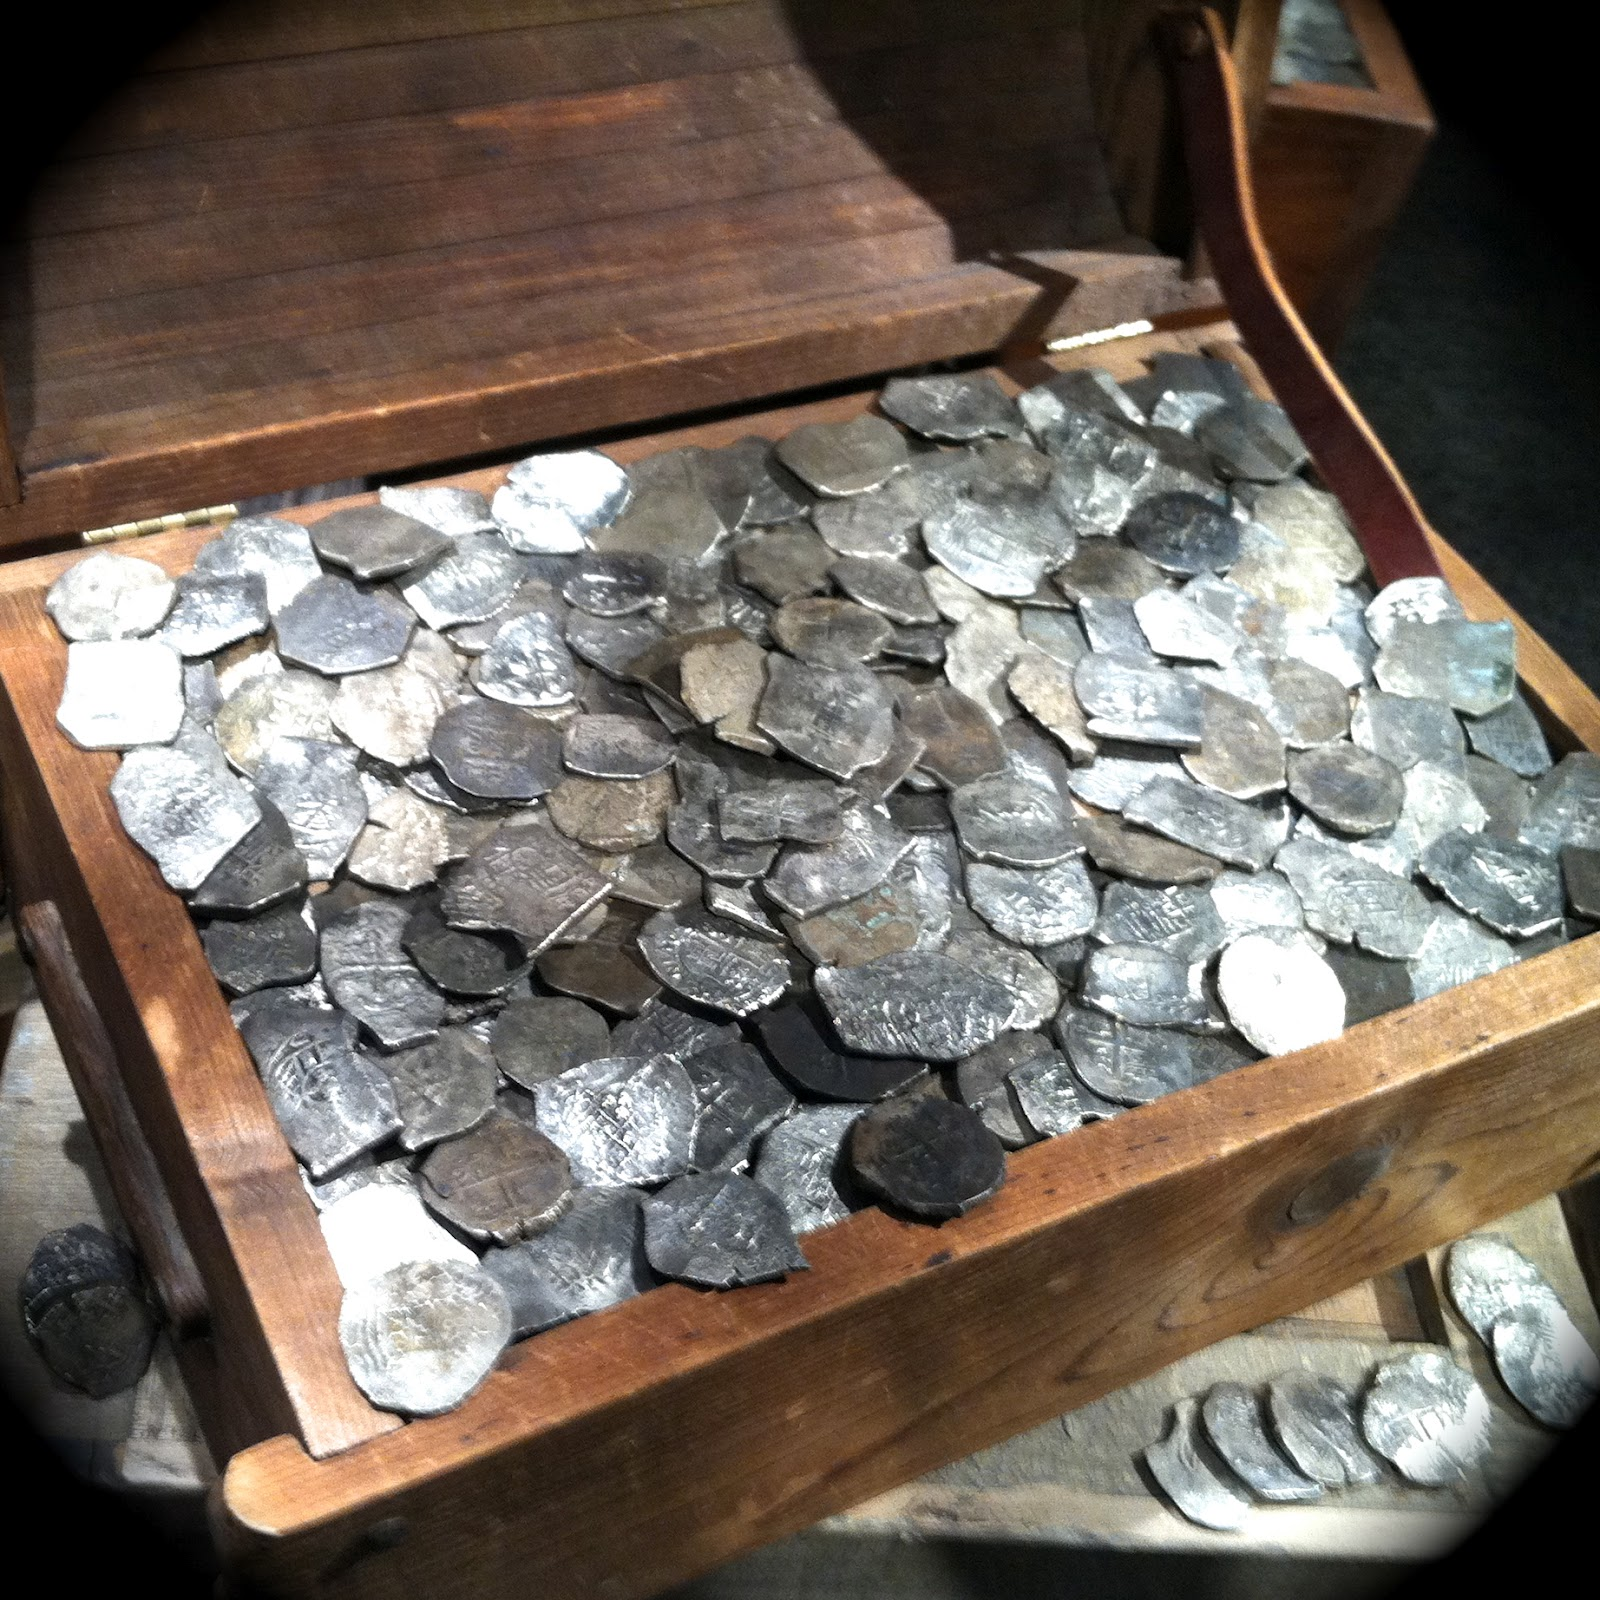 Real pirate treasure found - photo#1